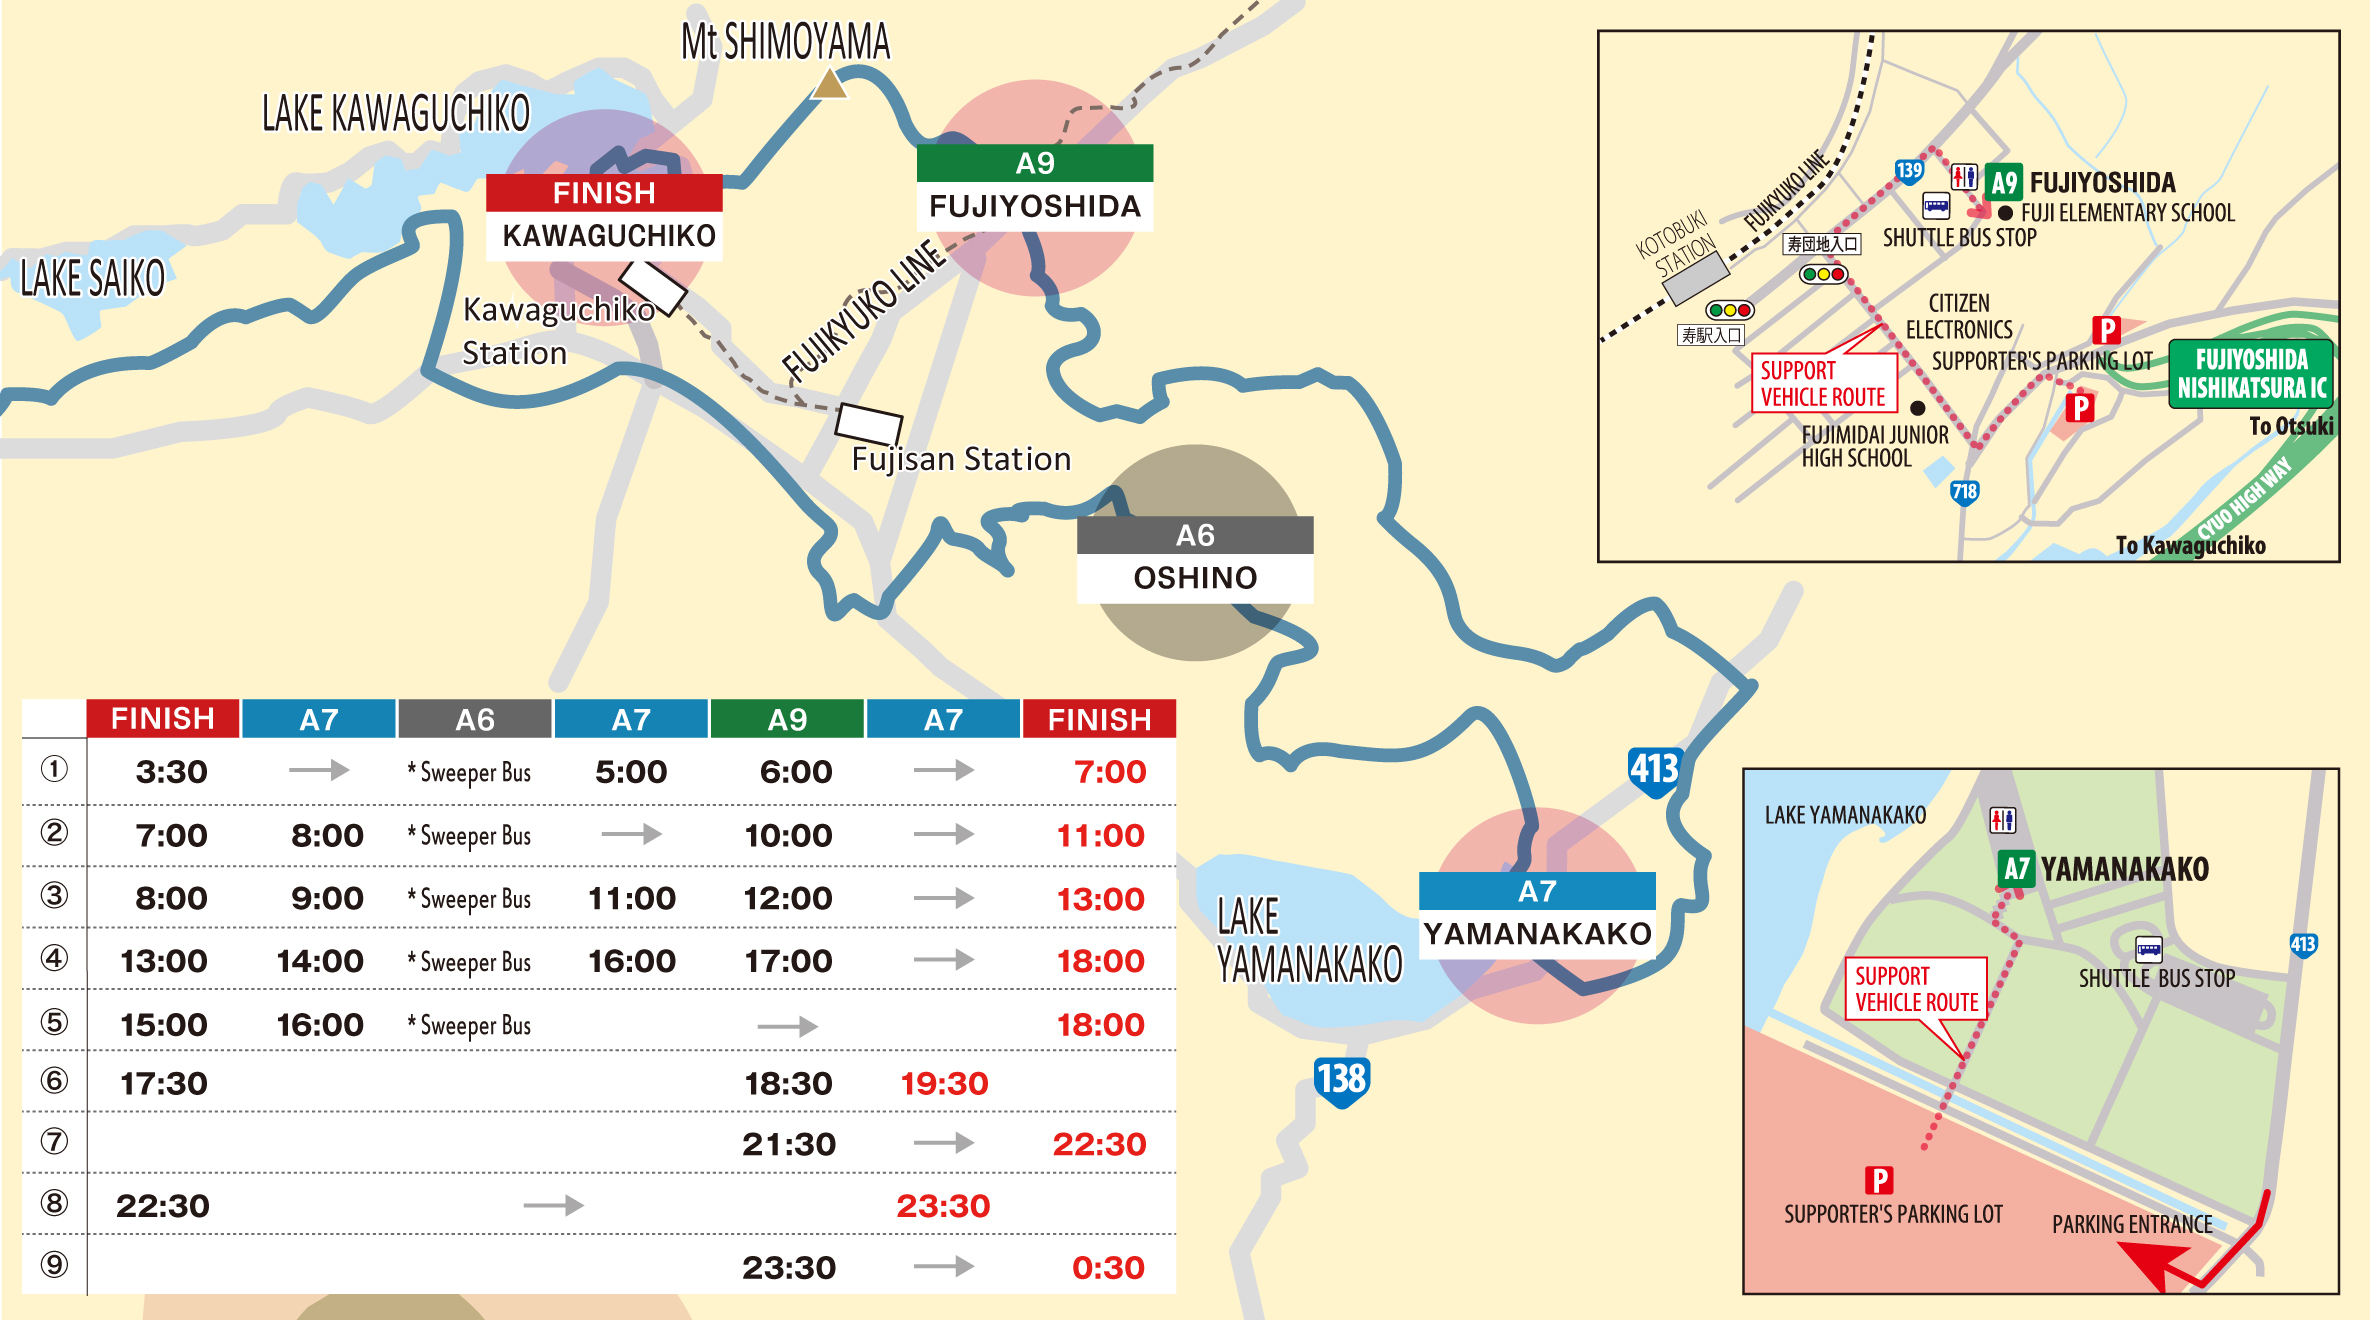 SUPPORTER SHUTTLE BUS | SUPPORTERS | ULTRA-TRAIL Mt FUJI